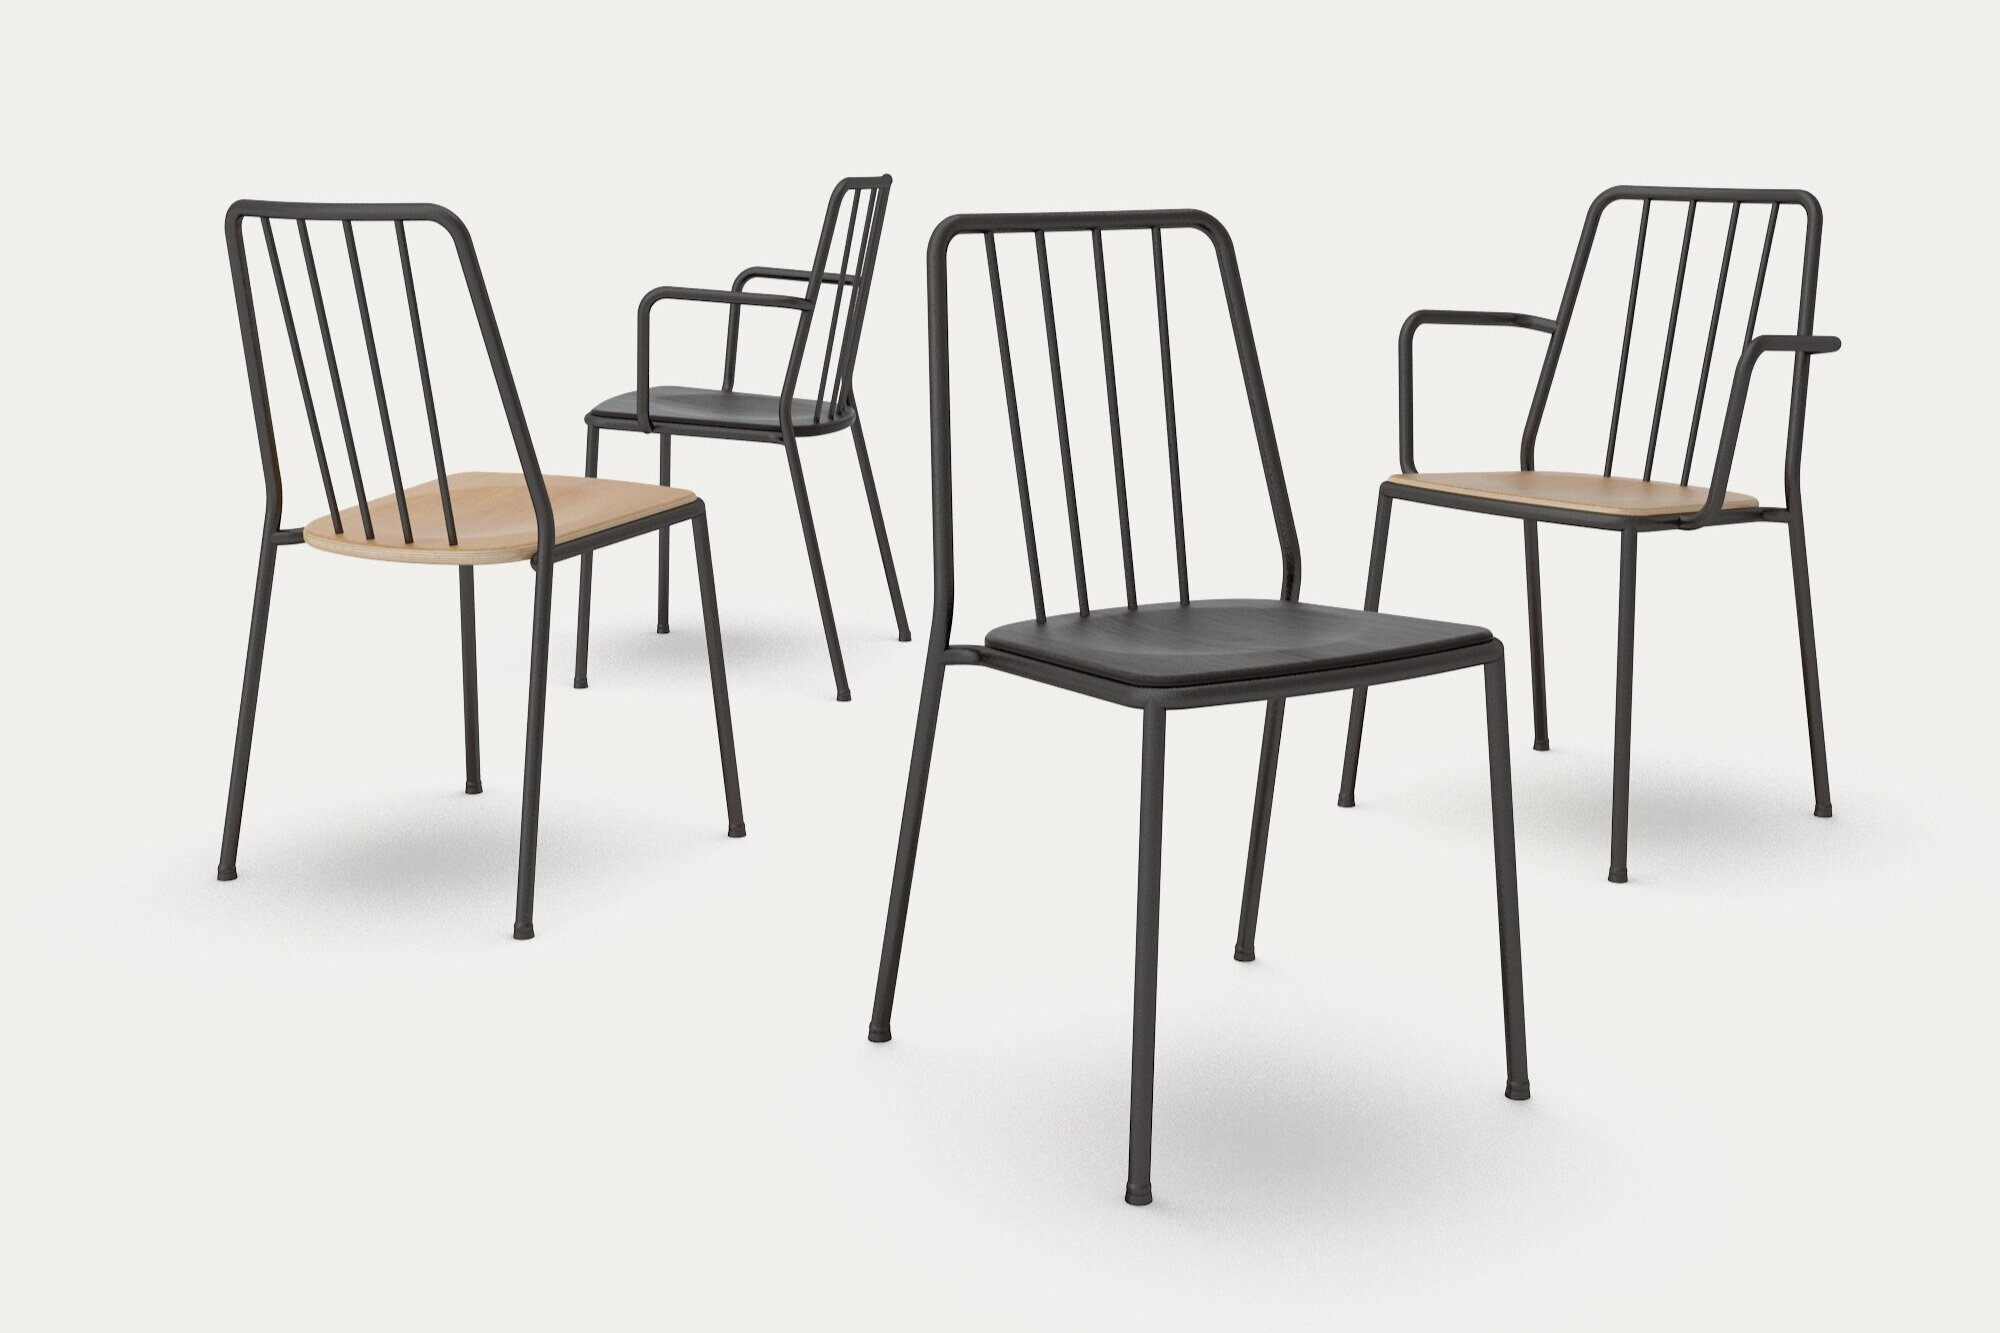 Built to last - The design is effortlessly current with a gentle nod to the past, vertical rods in the back recall the Windsor chair. Refined to its simplest form, an elegant metal frame carries a plywood seat, sculpted for comfort. Dependable materials and robust construction techniques ensure the chair will endure for generations.